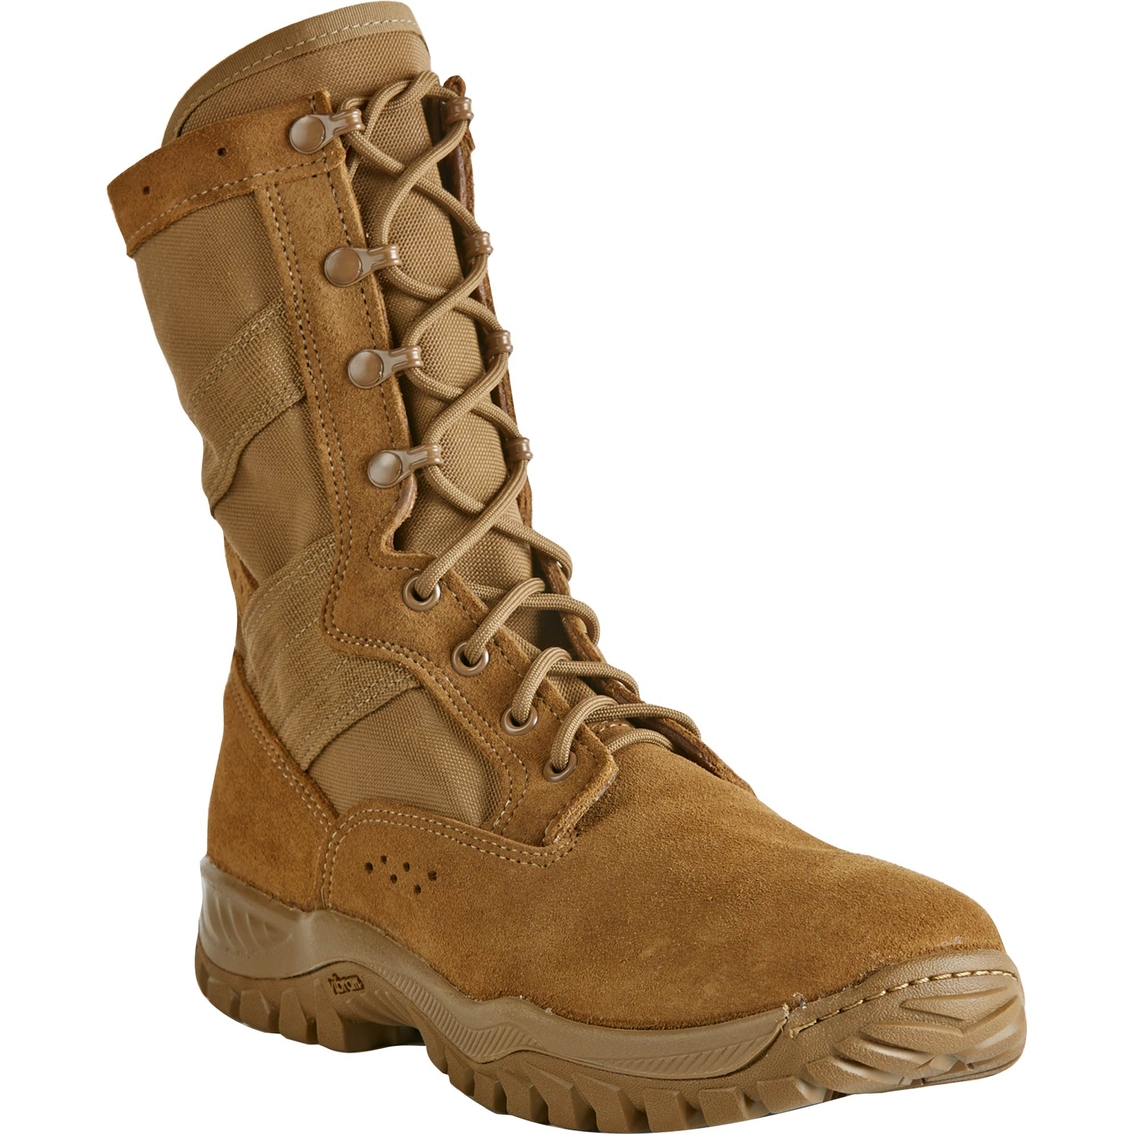 Belleville Boot Company has partnered with Vibram to create a cold weather boot with outer soles the can grip icy, wet surfaces. The boot-sole combination is still under development. (Belleville Boot Company)